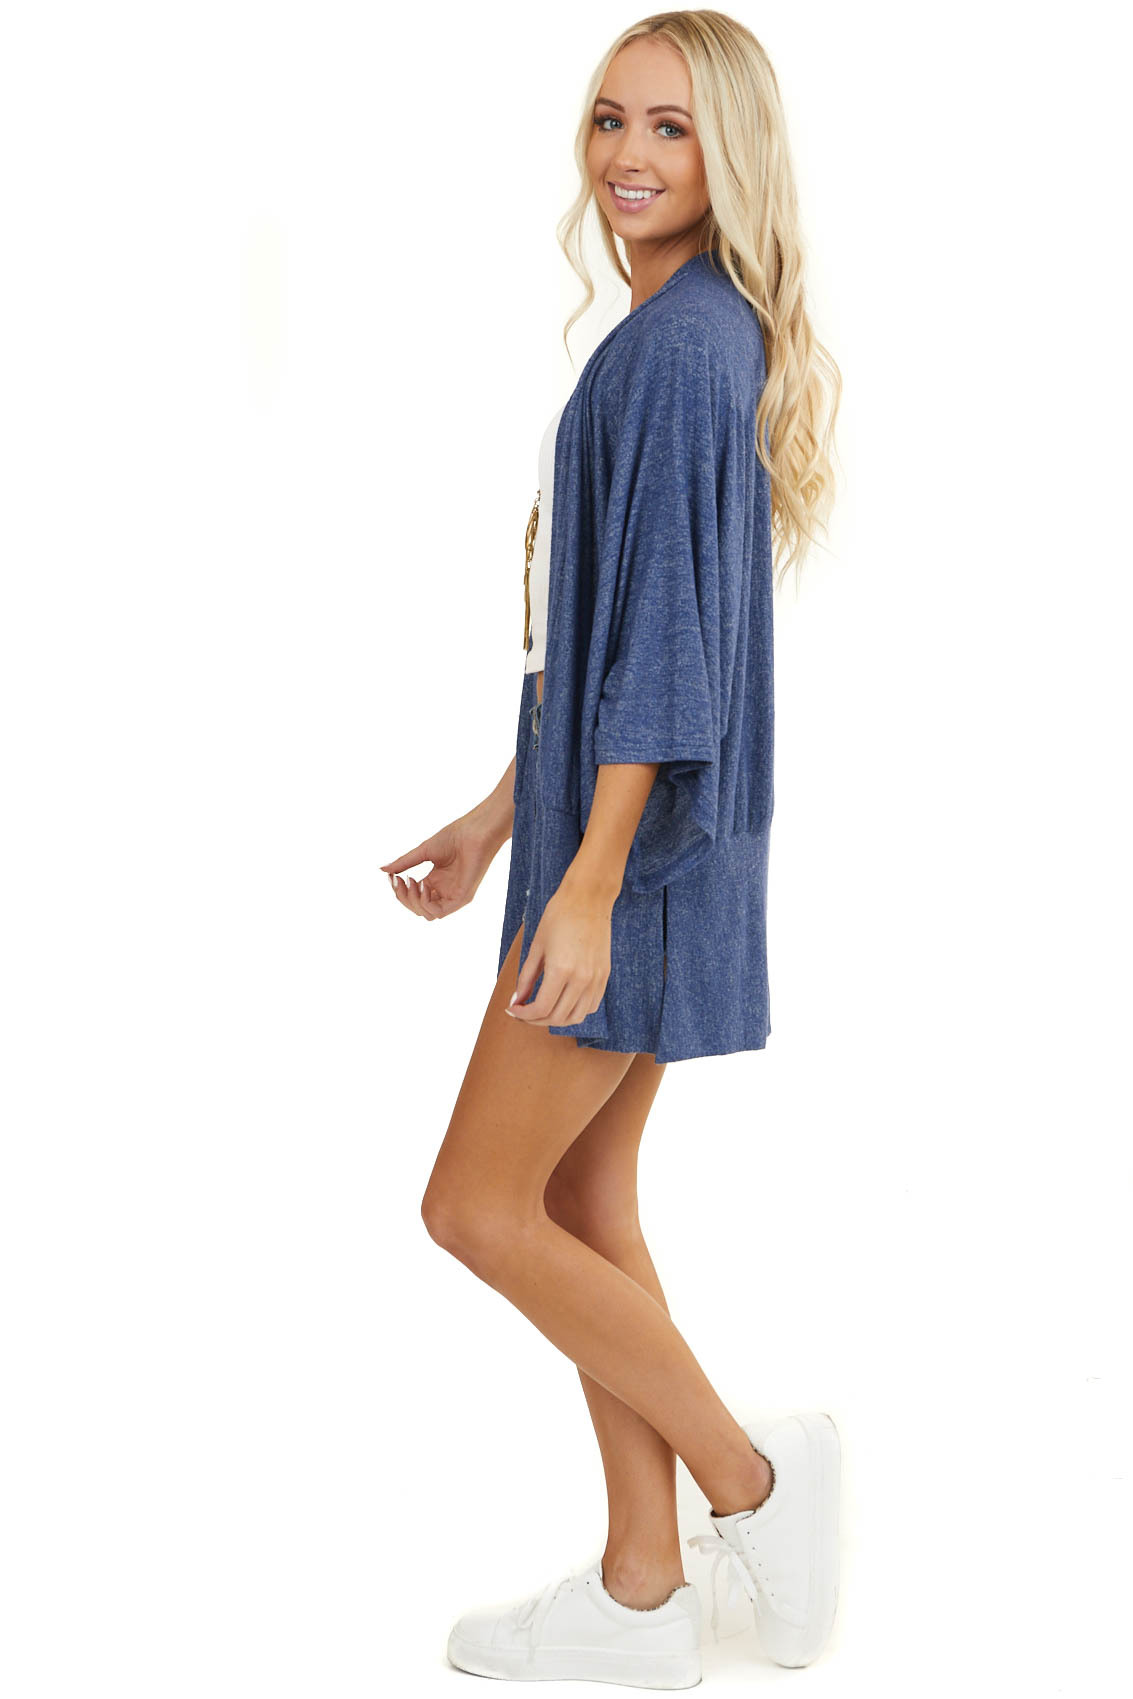 Heathered Dark Blue Open Cardigan with 3/4 Dolman Sleeves